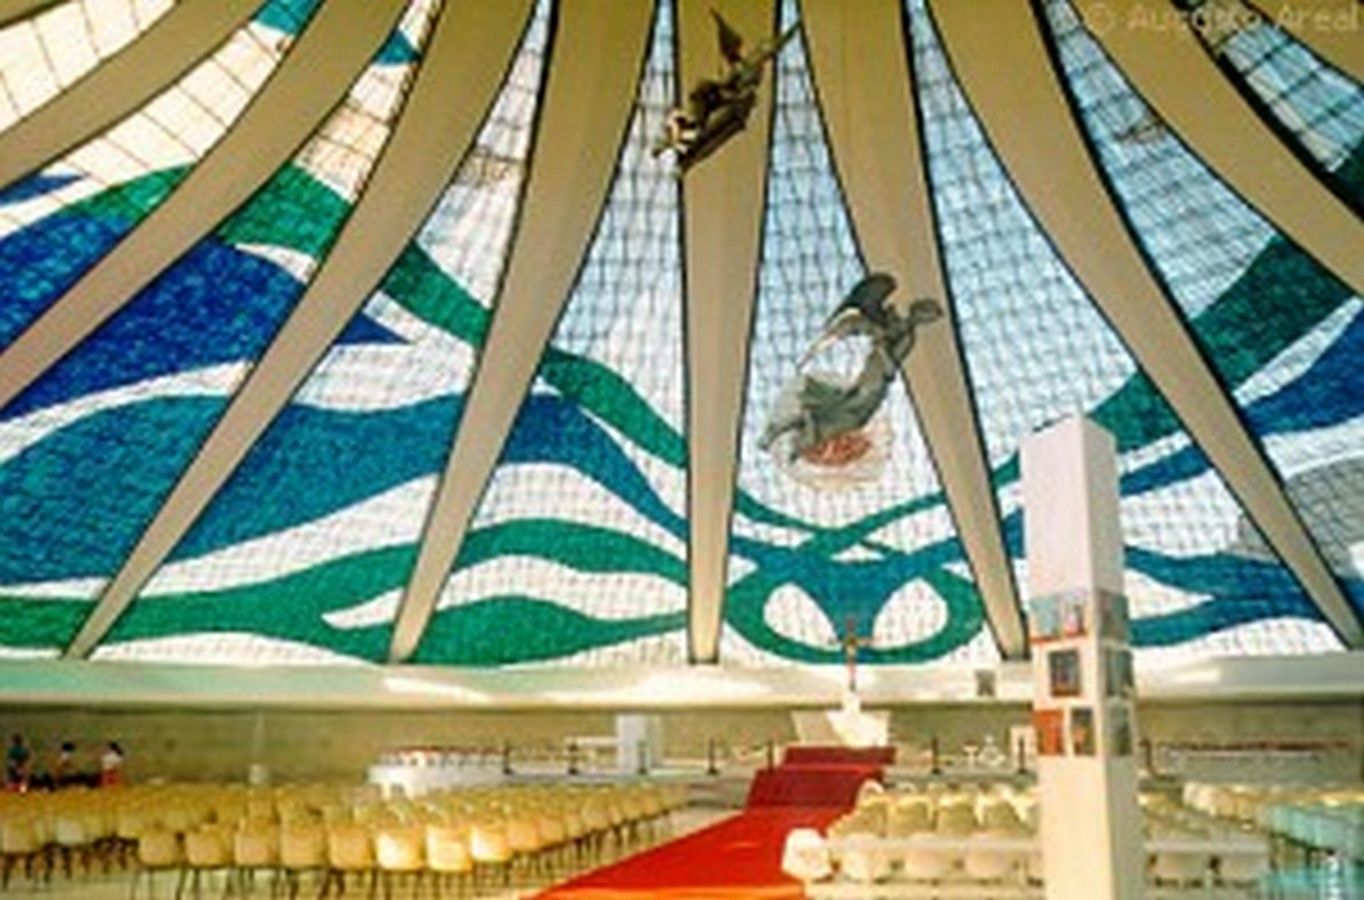 Cathedral of Brasília by Oscar Niemeyer-Hyperbolic structure built from Concrete - Sheet4